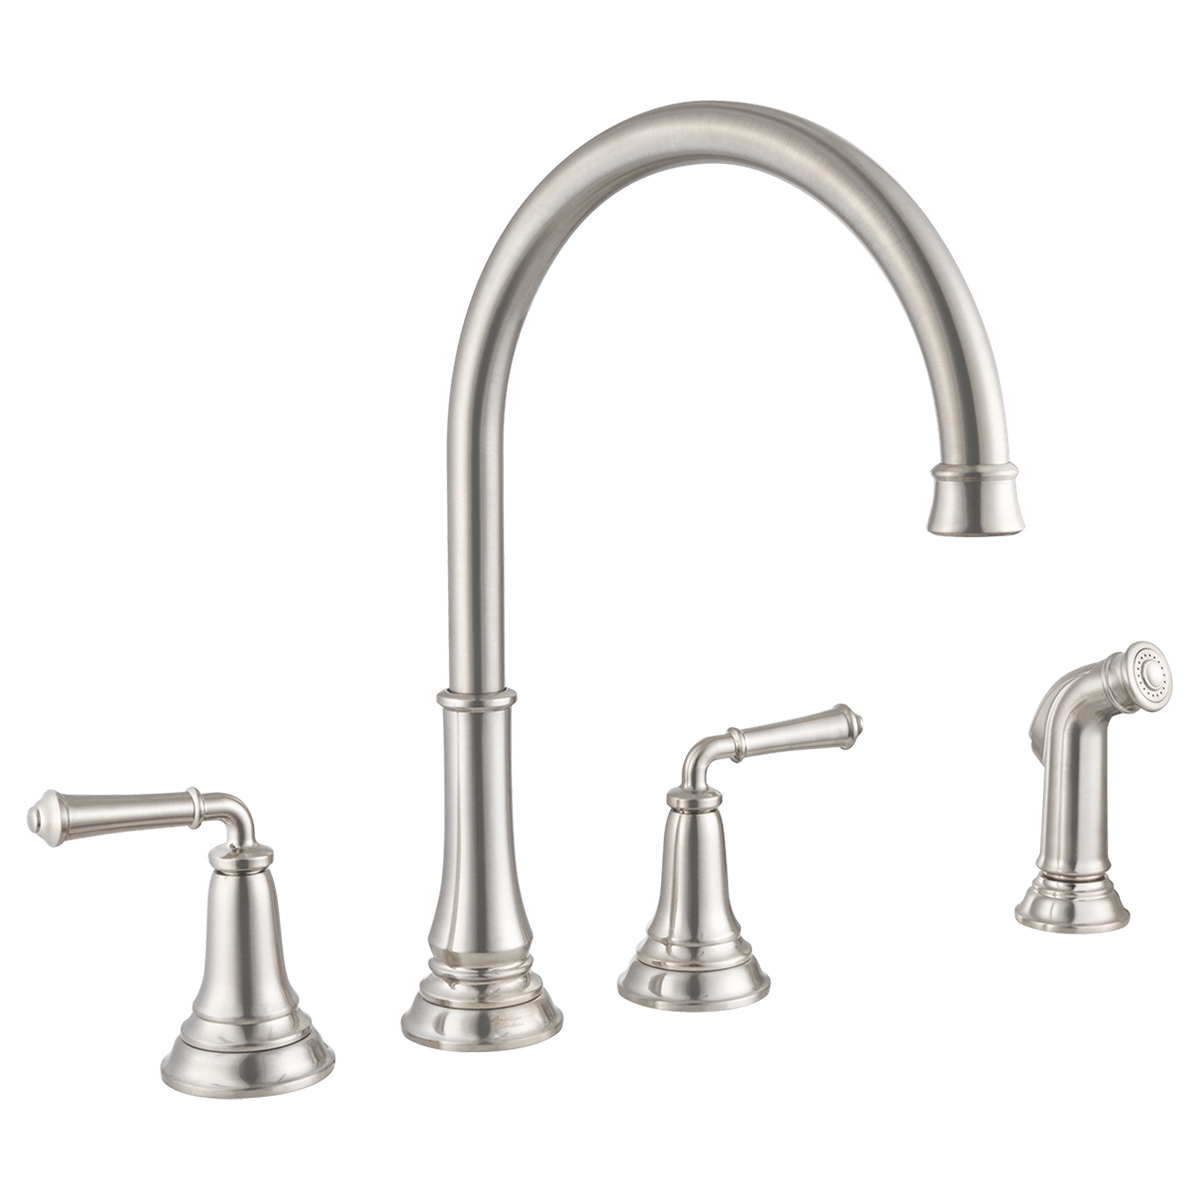 American Standard 4279 410 Delancey 2 Handle Kitchen Faucet With High Arc Brass Swivel Spout And Side Spray